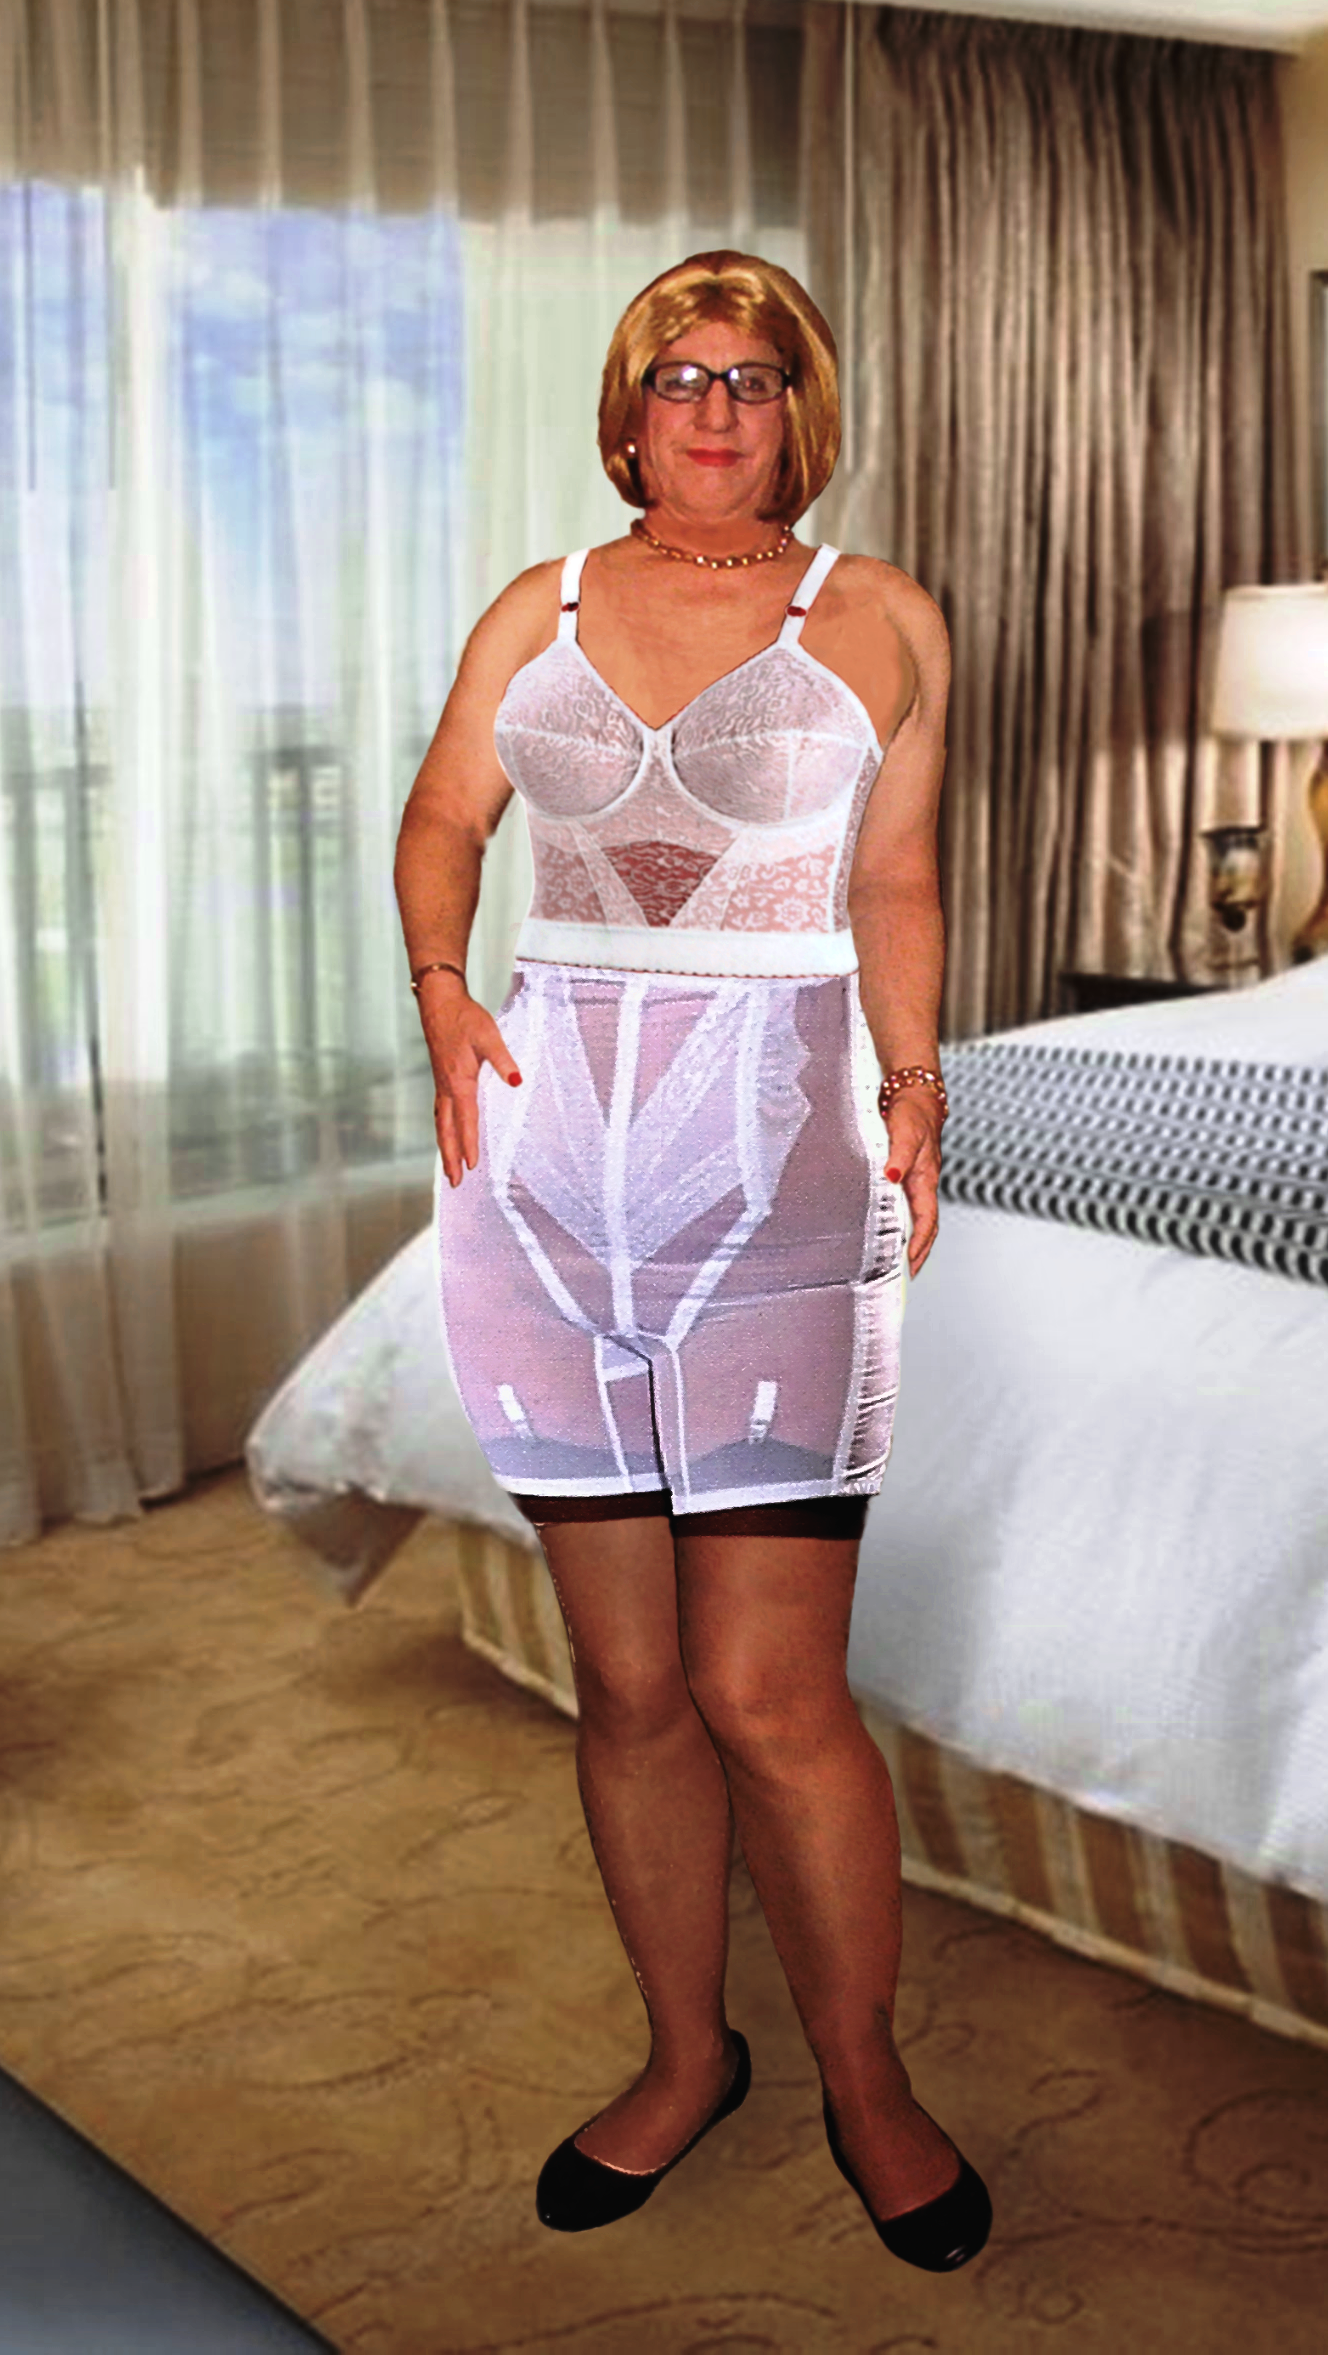 619525c4bbe53 RAGO STYLE 6210 - HIGH WAIST HALF LEG EXTRA FIRM SHAPING This is my go to  shapewear. This is about as firm control as you can get.